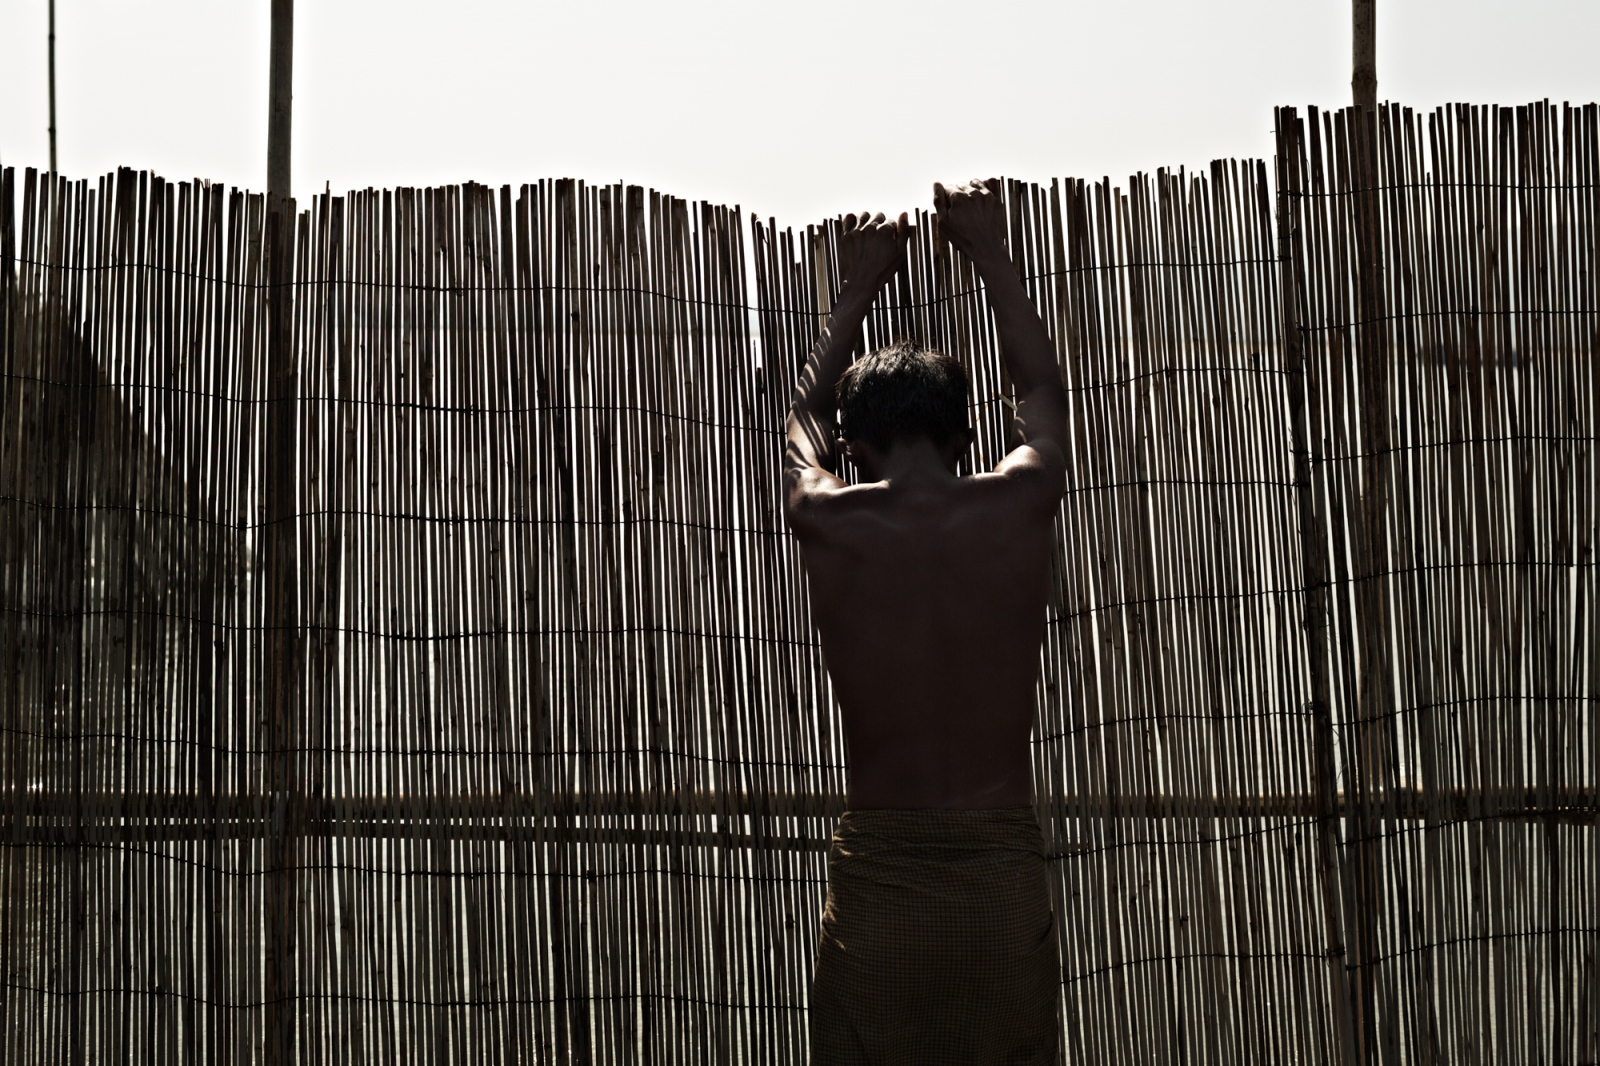 Outside of Mandalay City, a fisherman places bamboo fencing across a shallow channel in the Irrawaddy River. The fencing will funnel fish into waiting nets.